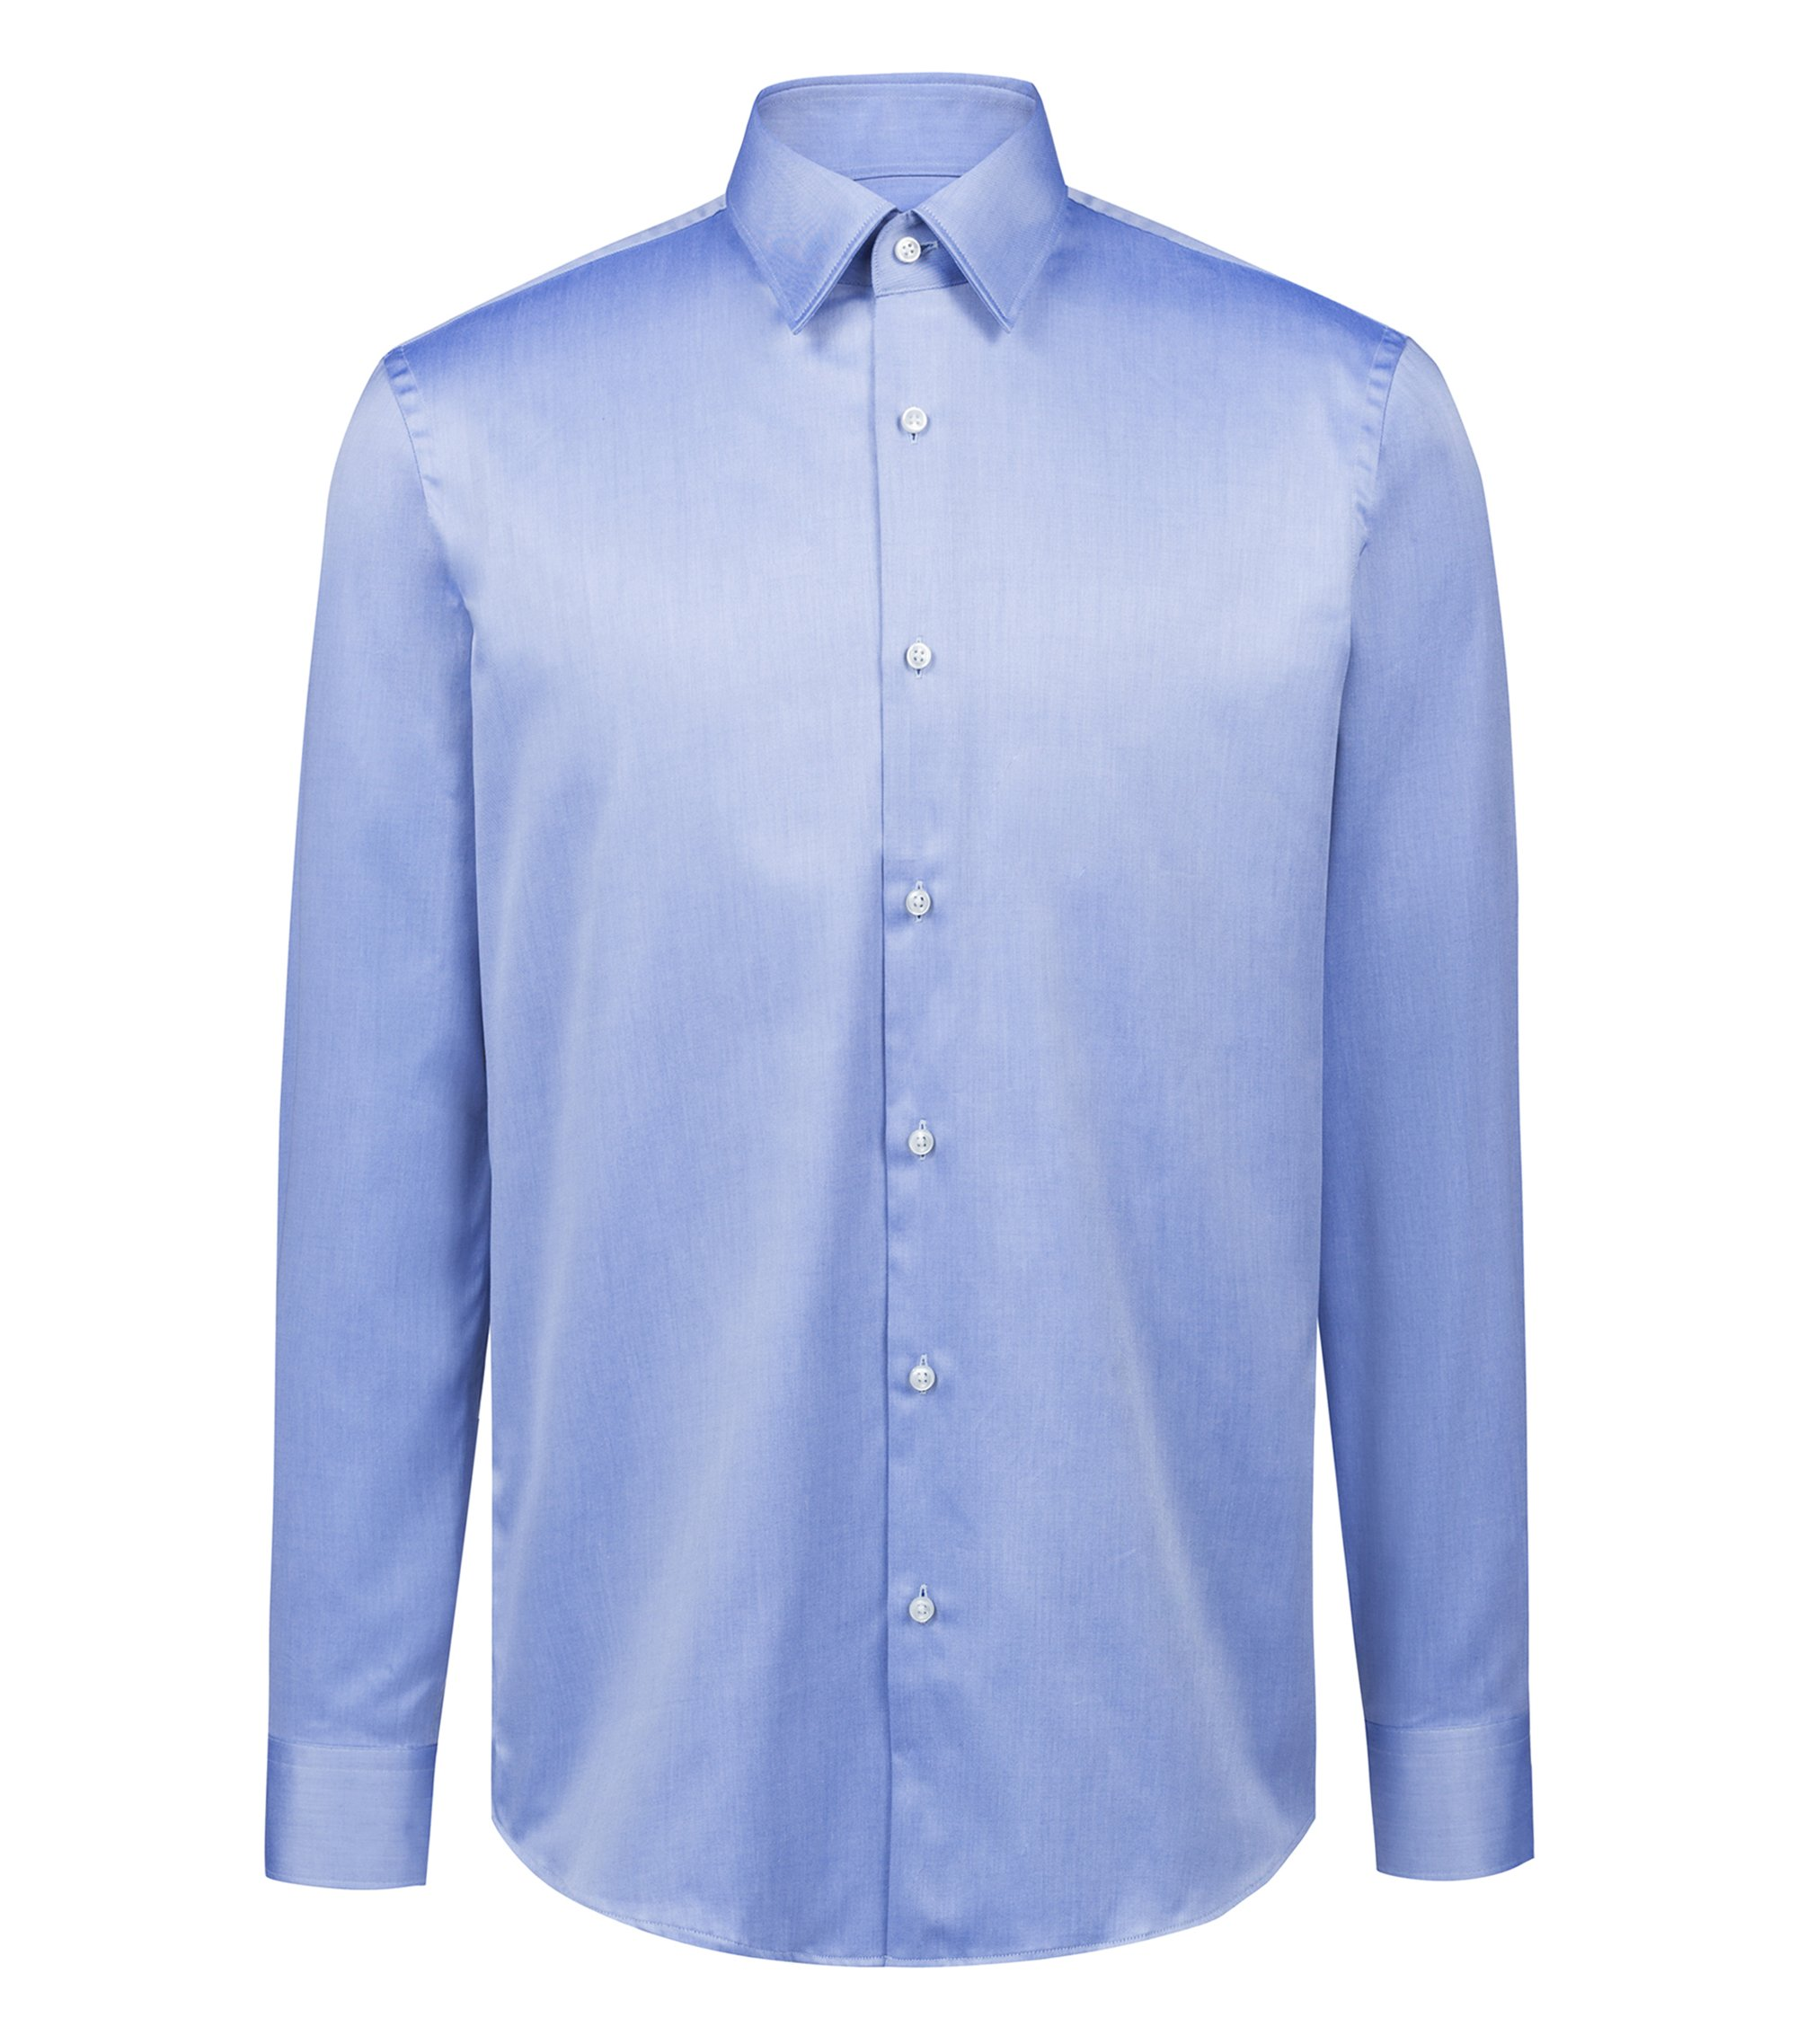 Regular-fit shirt in diagonal-striped cotton twill, Open Blue